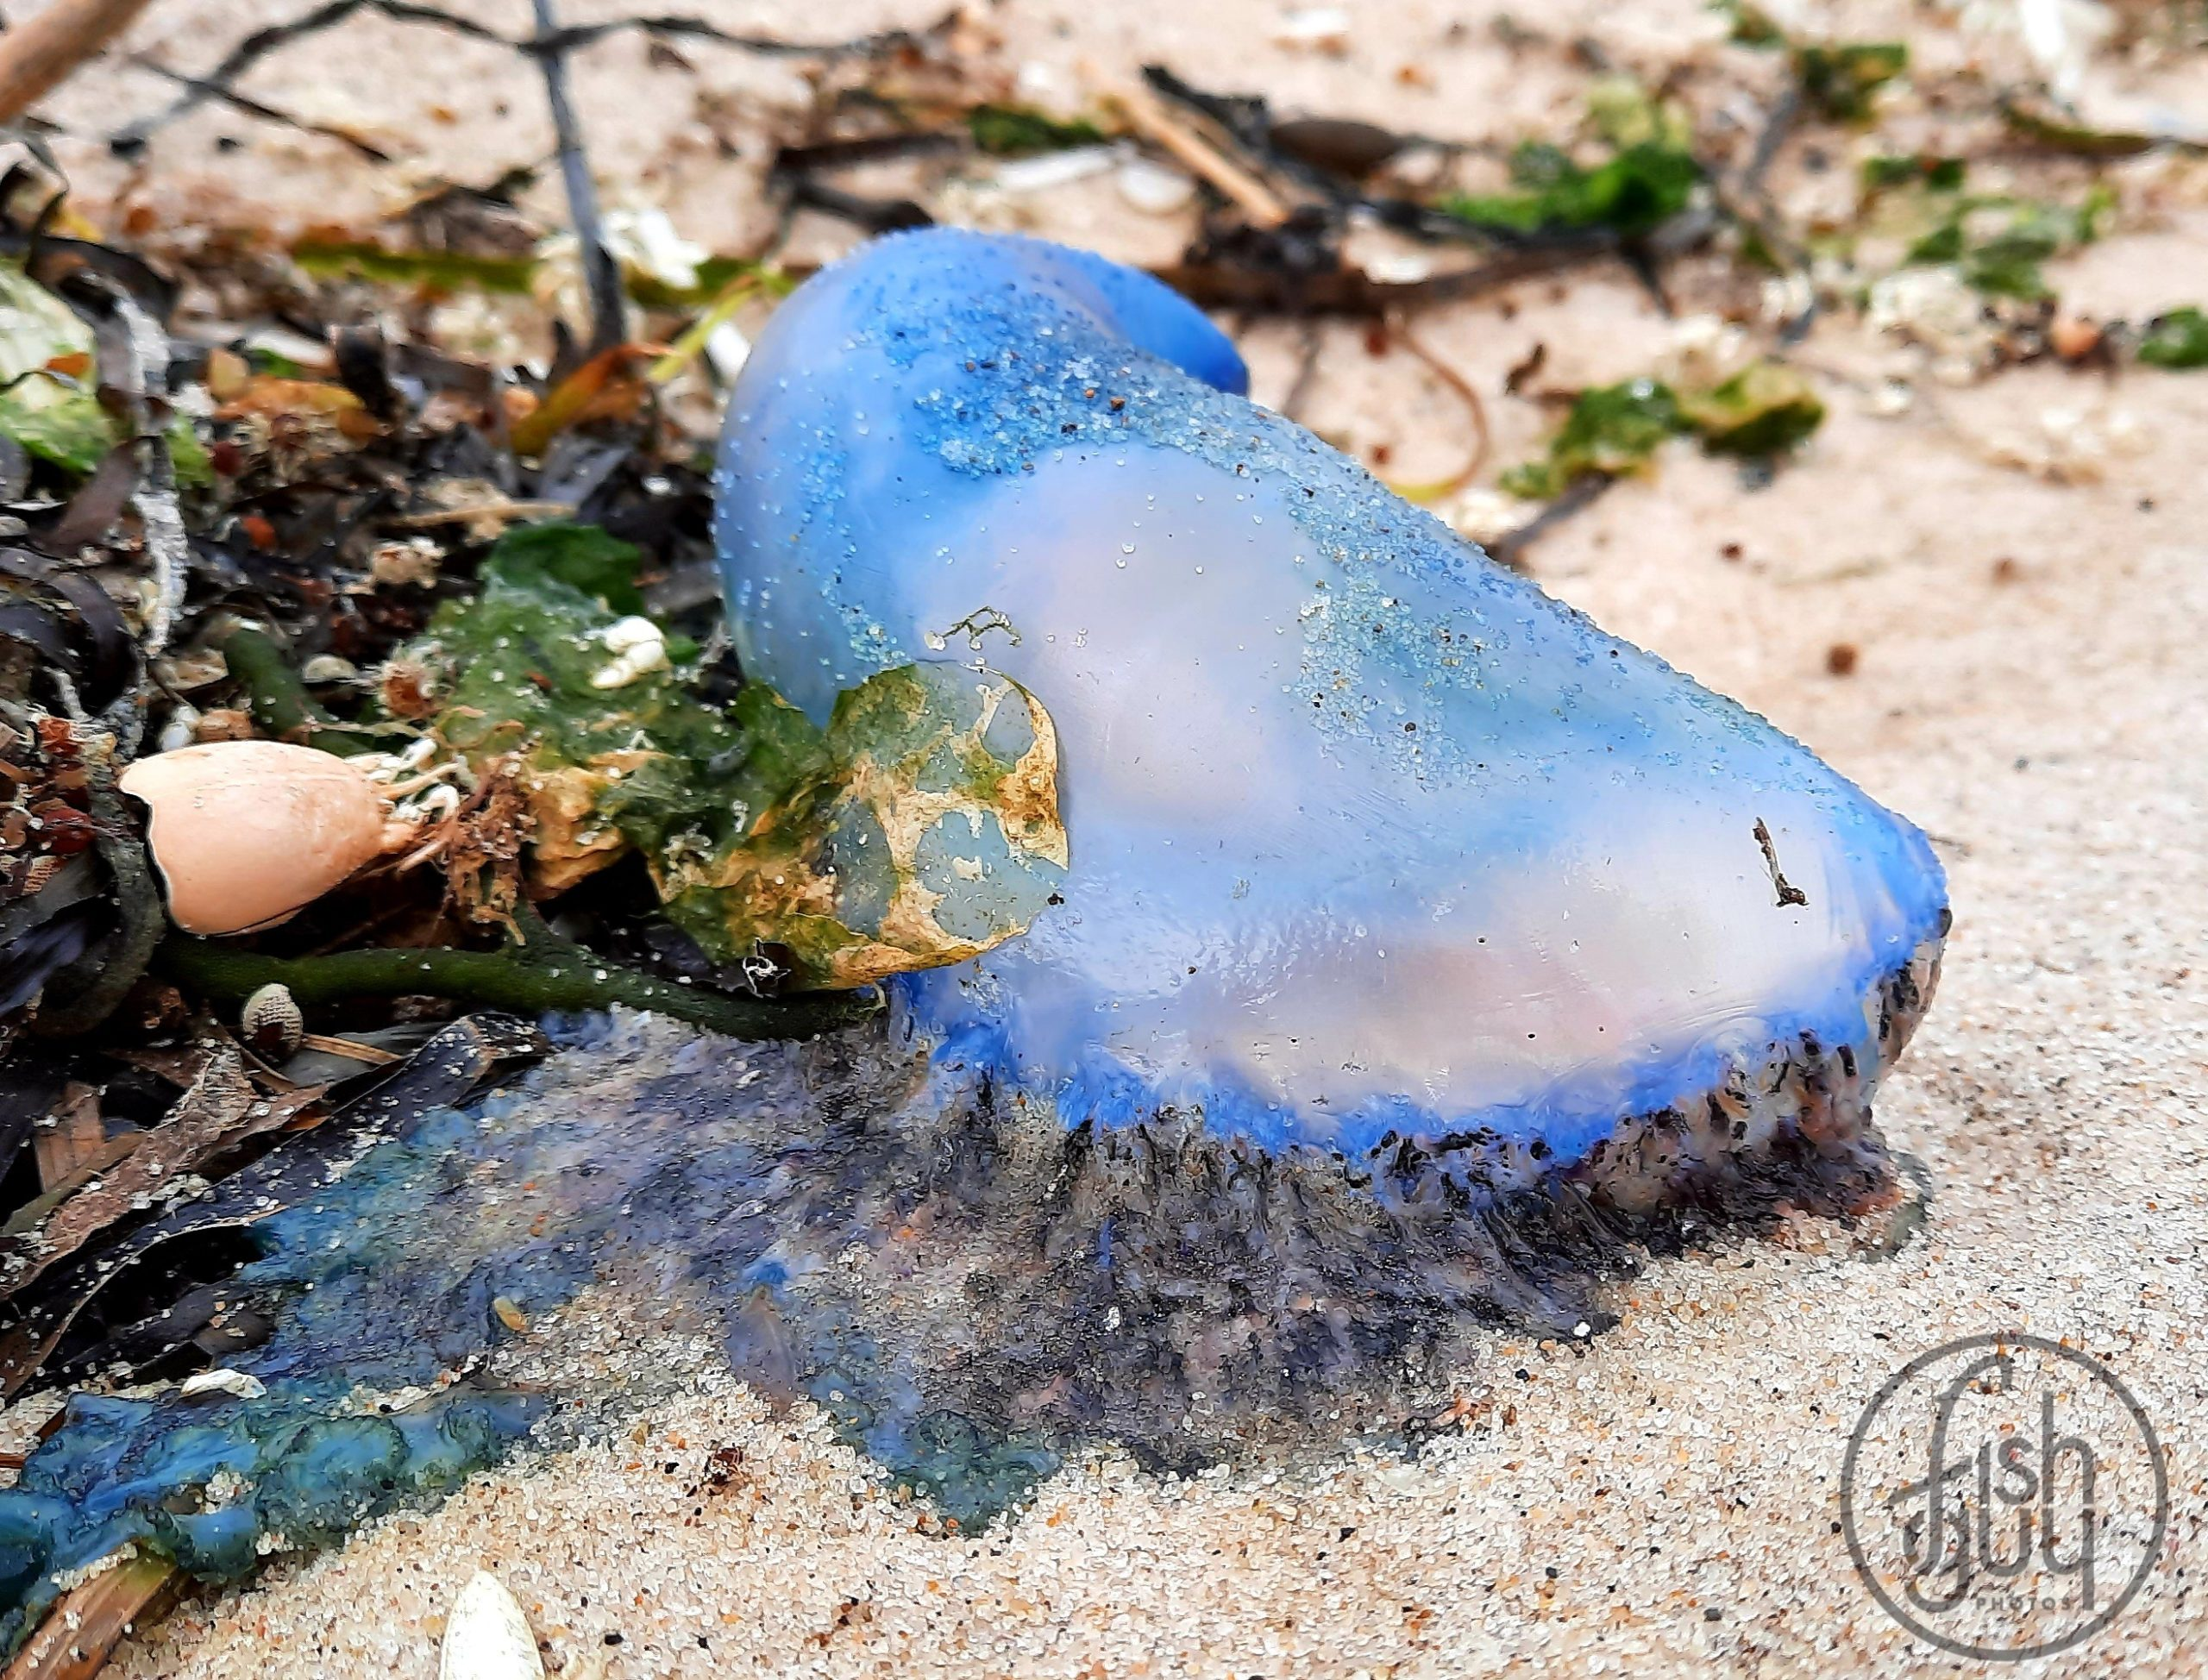 A Portugese man-of-war jellyfish on a local beach. Hundreds of the tropical jellyfish, whose tentacles pack a painful sting, have washed up on beaches in the last few days and can be dangerous for several days.